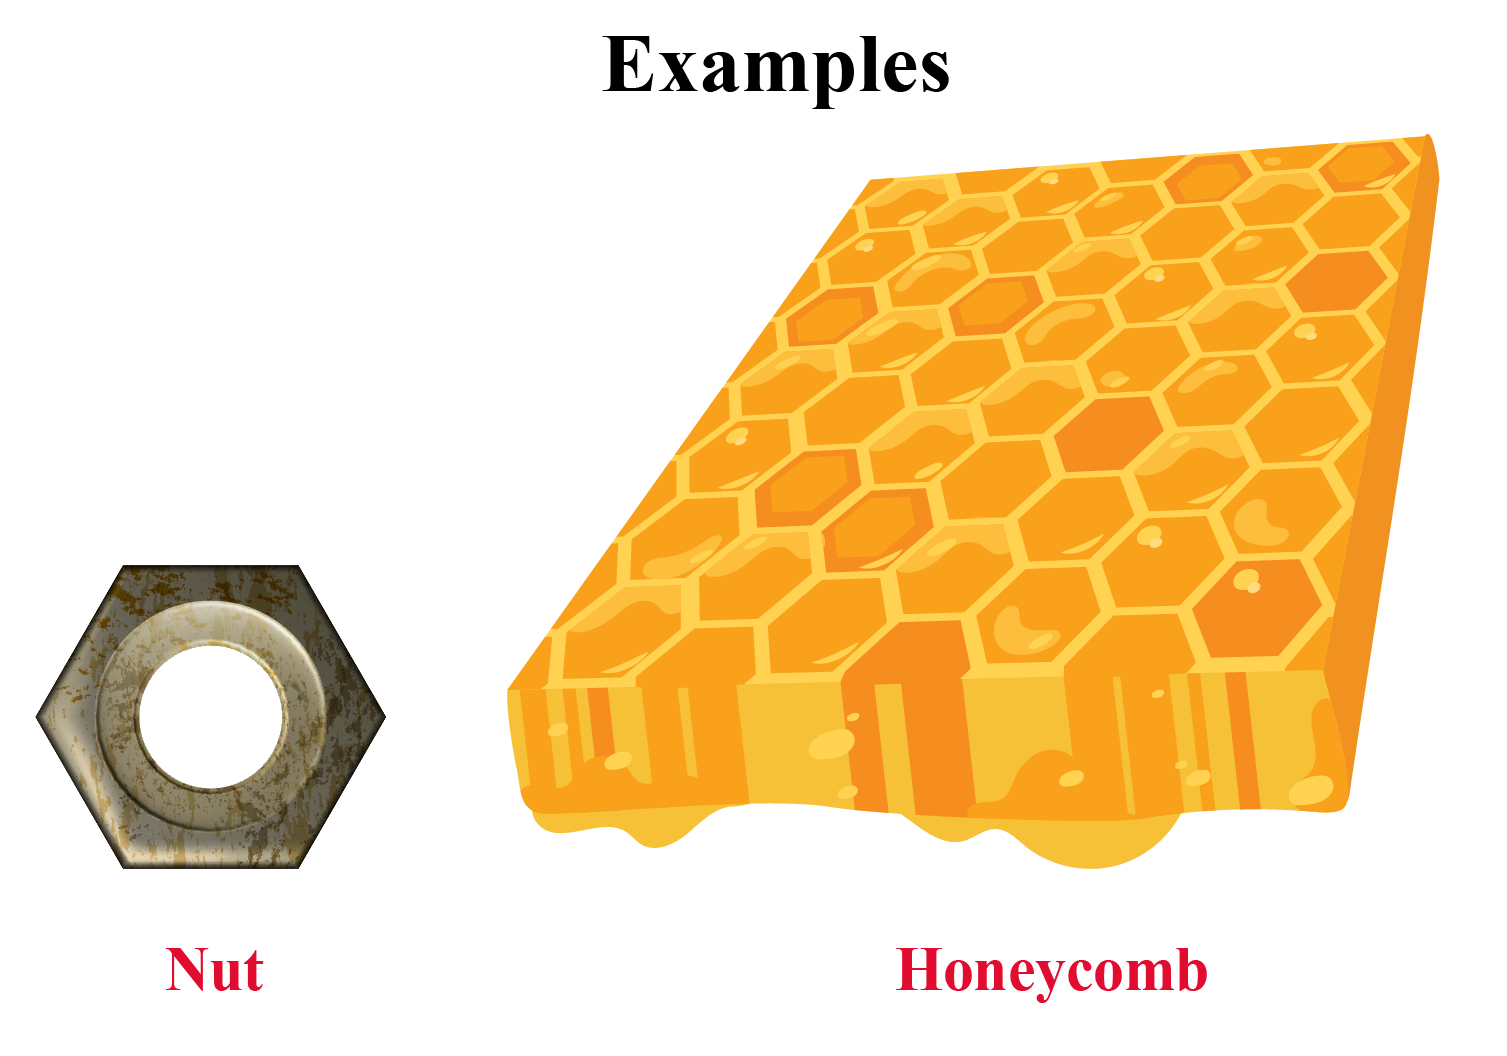 Hexagons real life examples of a metal nut and honeycomb